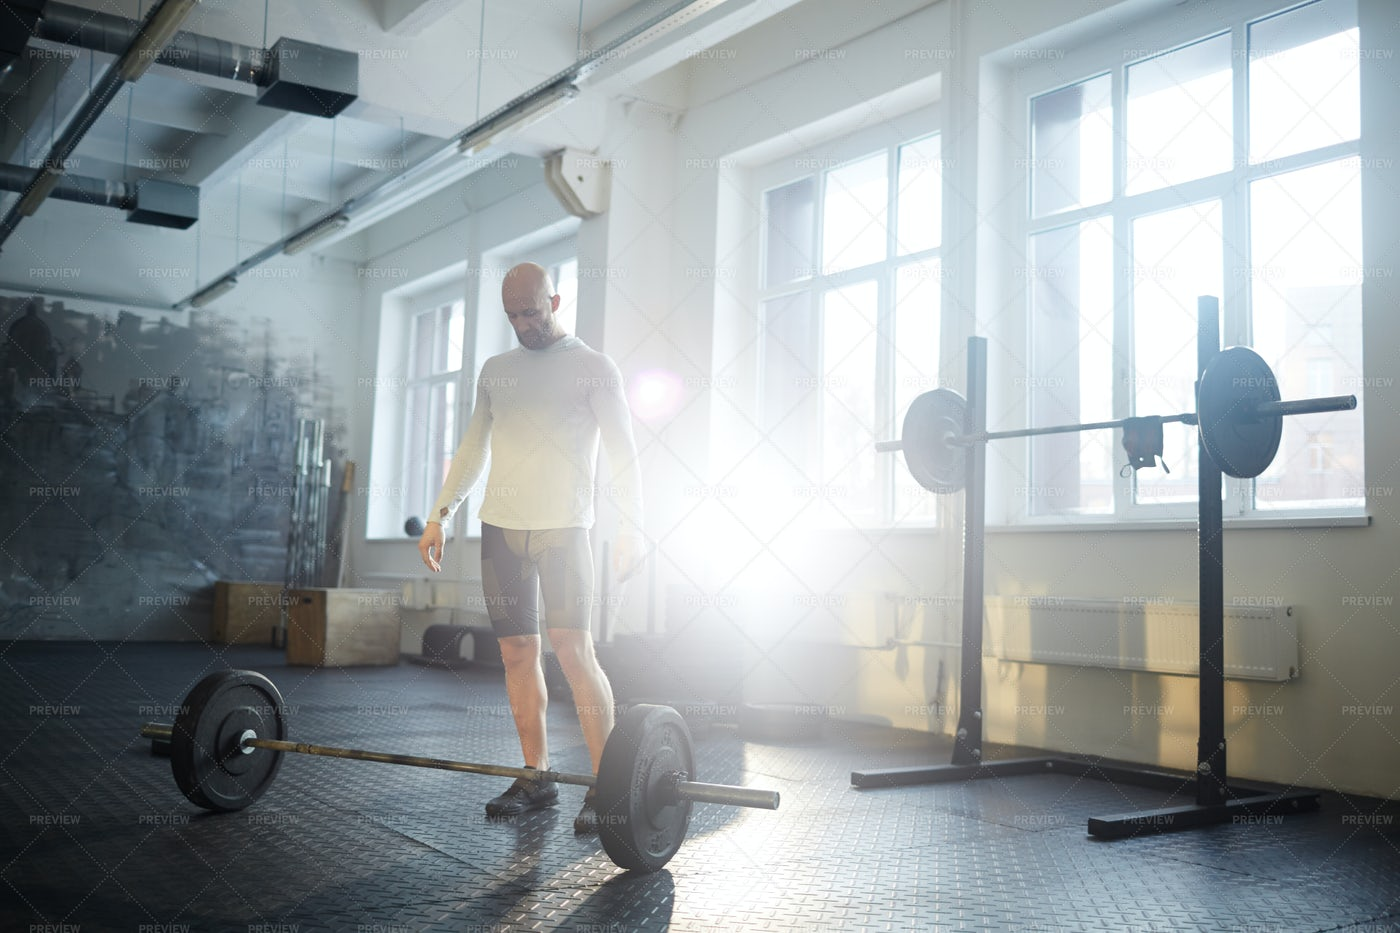 Man In Weightlifting Workout: Stock Photos